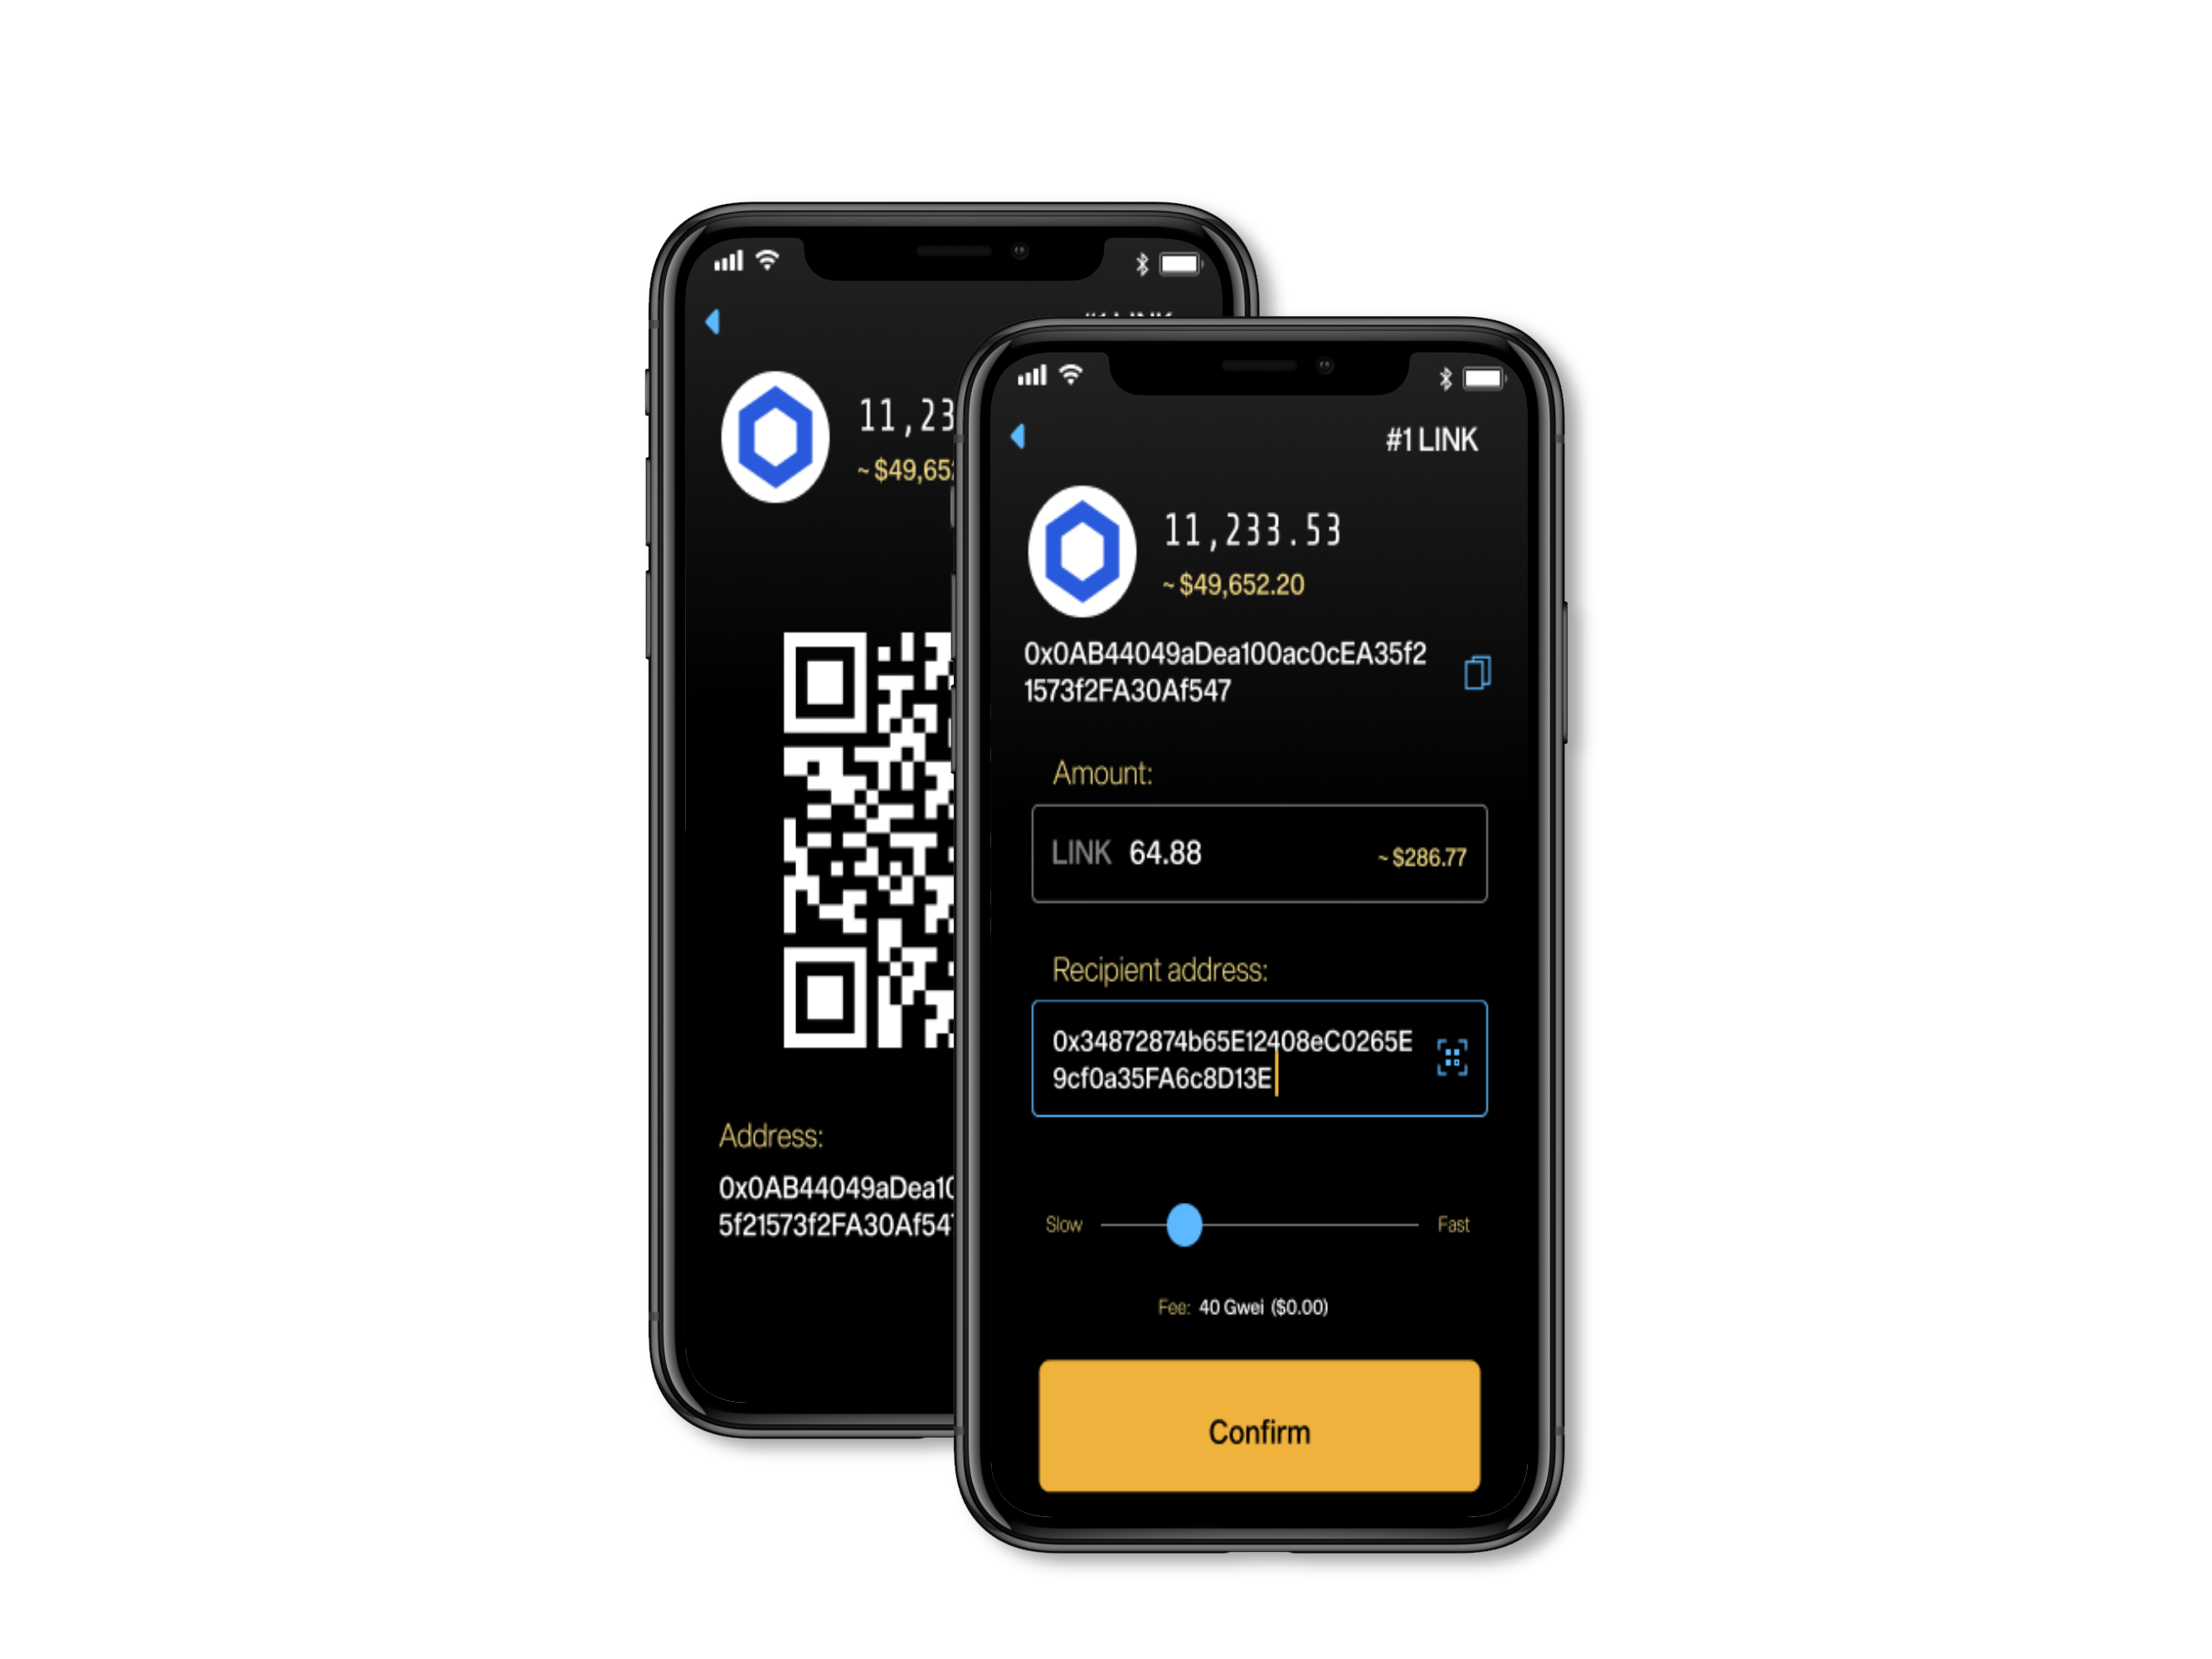 NGRAVE LIQUID mobile app, QR codes, Chainlink, NGRAVE cryptocurrency hardware wallet. Ledger Nano, Trezor one Trezor model T.